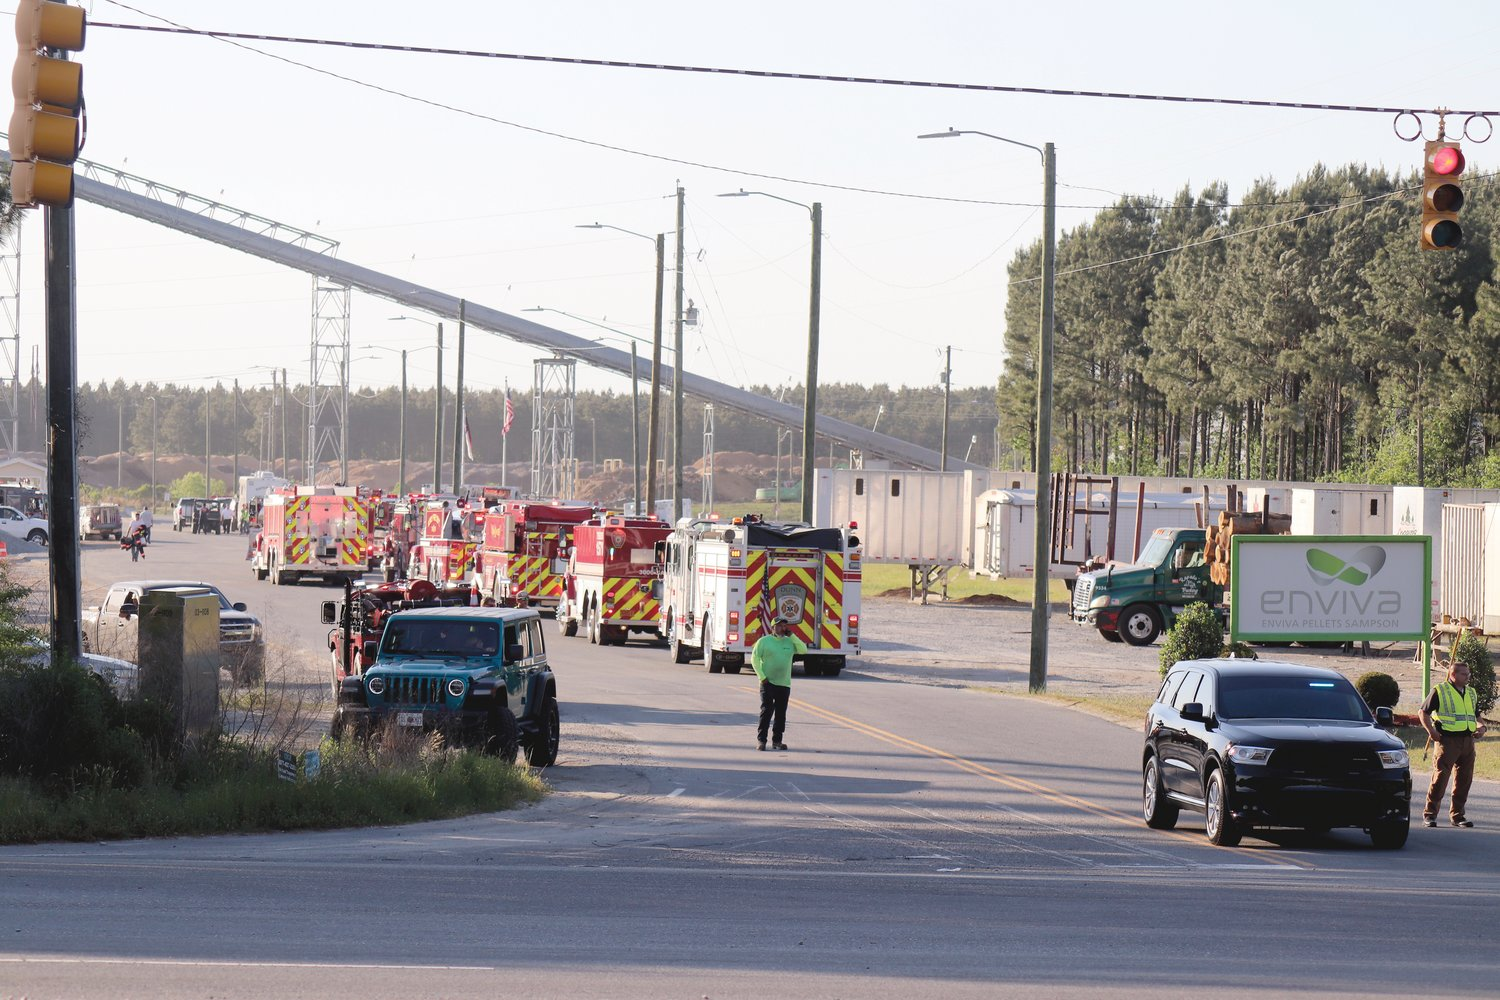 Firefighting crews from multiple counties and the N.C. Forestry Service work to extinguish a blaze at the Enviva Pellet Plant in Sampson County Friday evening.